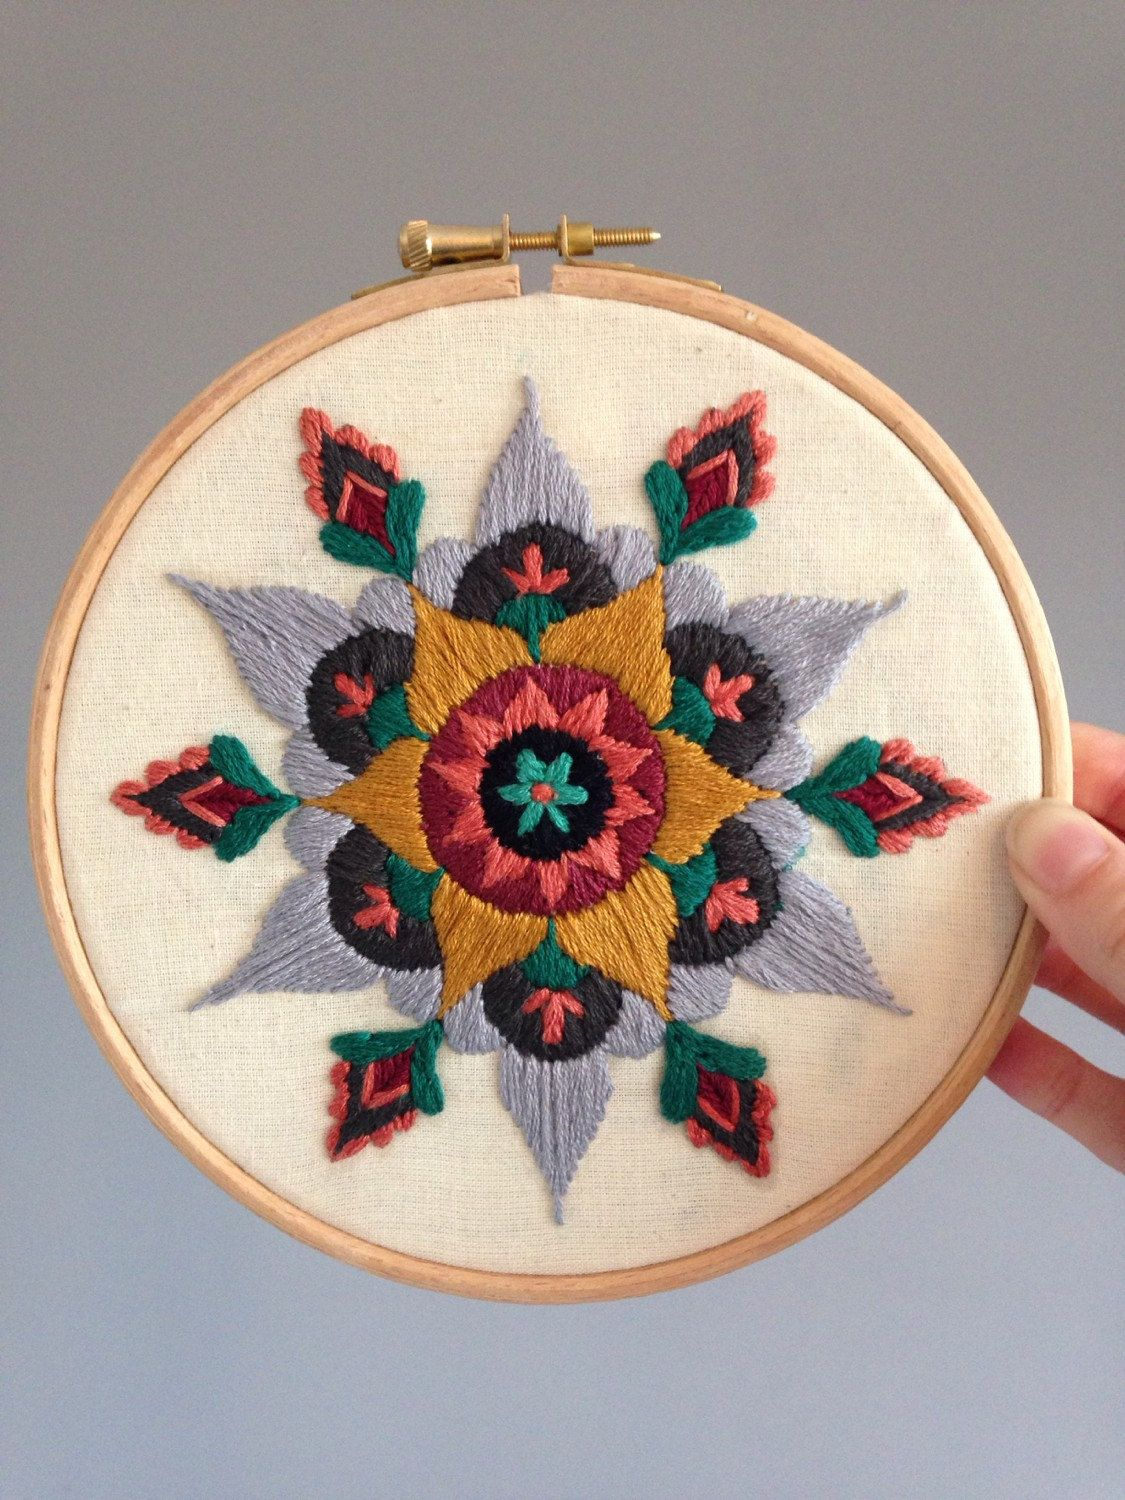 A Beautifully Ornate Original Mandala Design, Carefully Hand Embroidered  Onto Crisp Calico Fabric, On